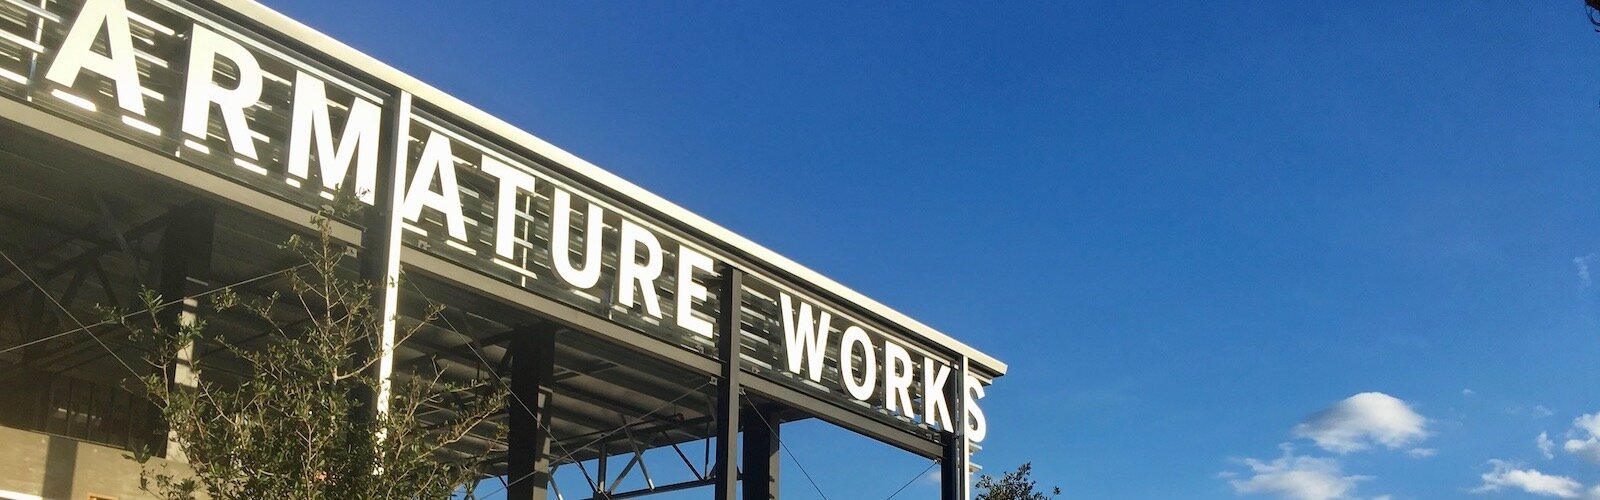 Armature Works is a catalyst for change in Tampa Heights.